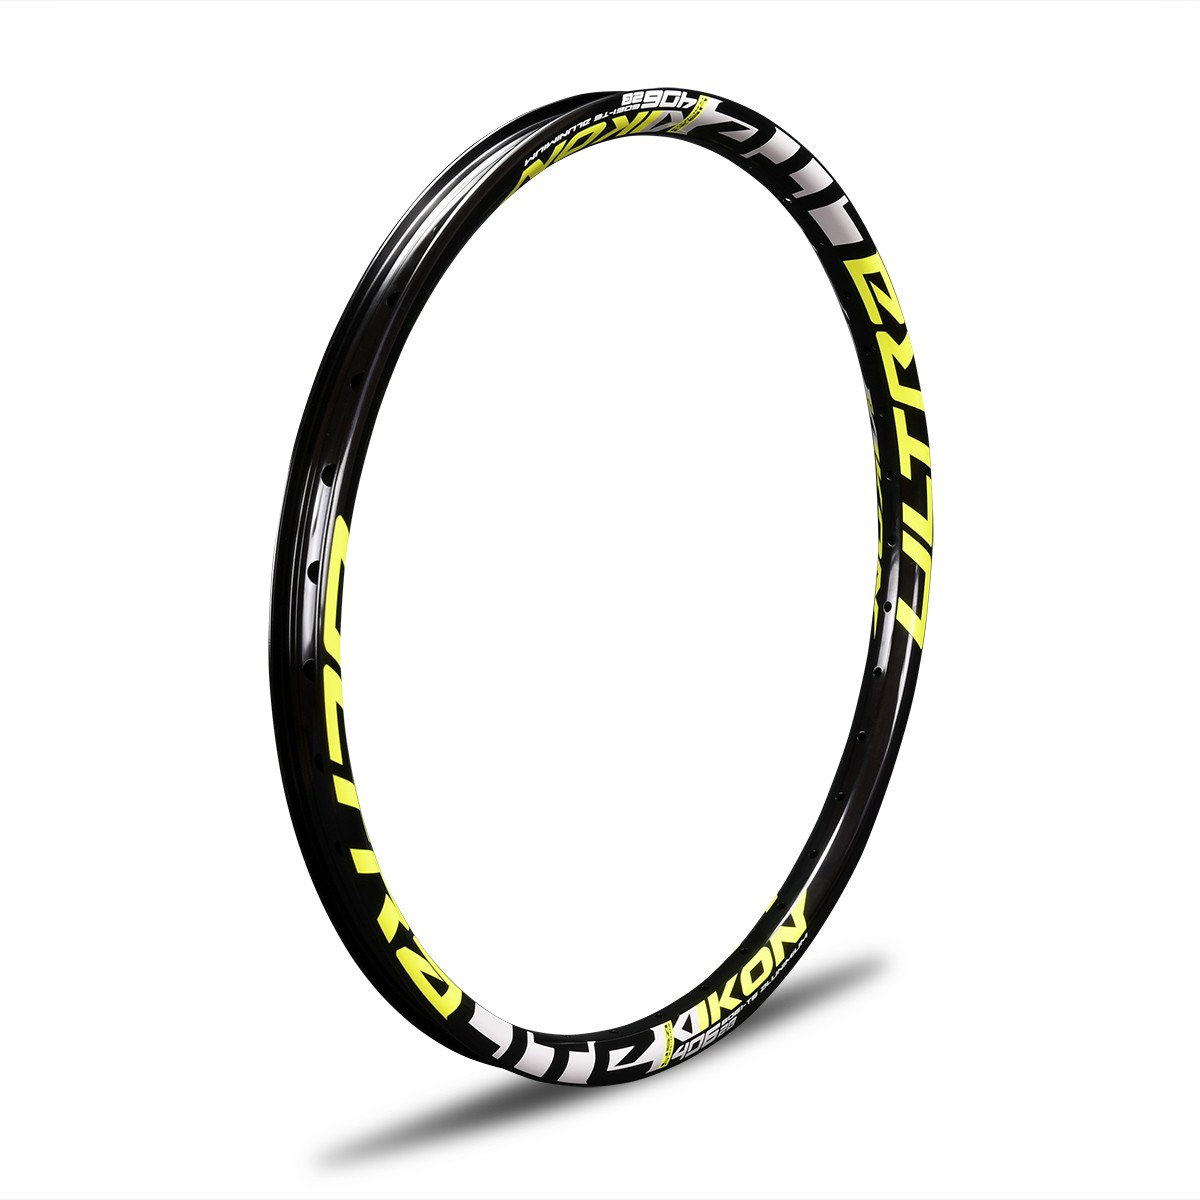 "IKON ALLOY 20"" RIM 406x28 36H NO BRAKE SURFACE"